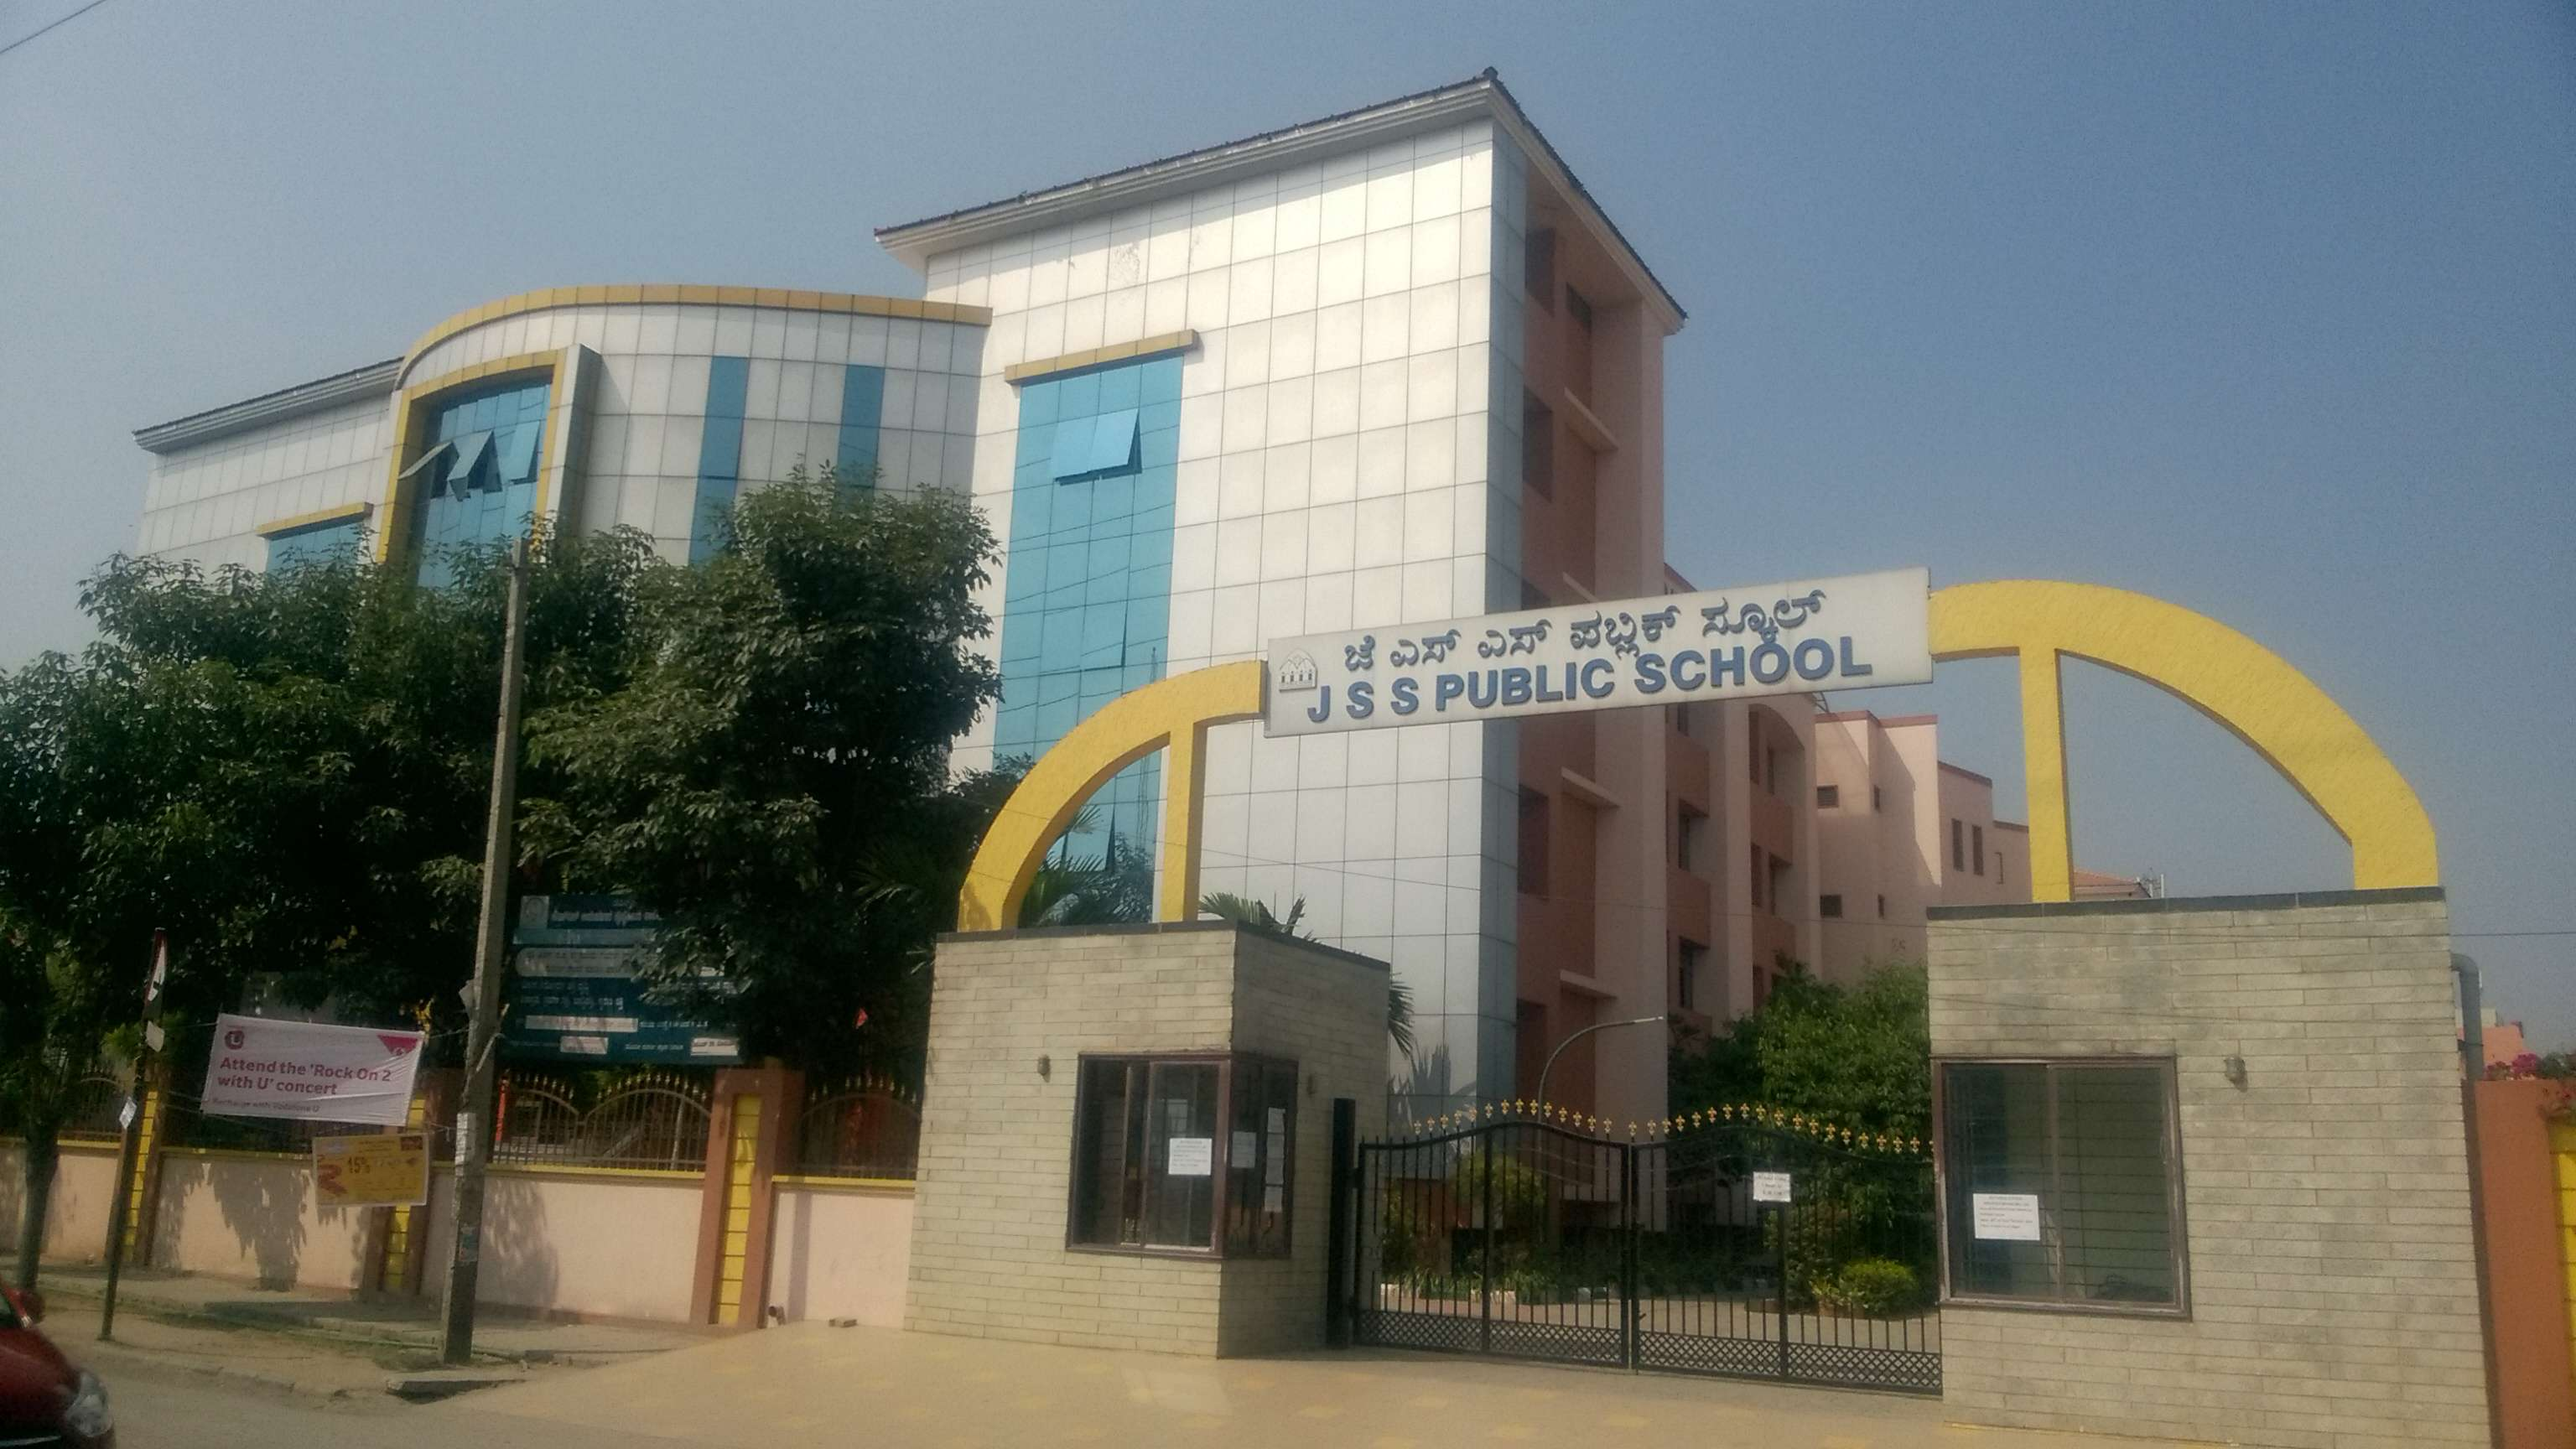 JSS PUBLIC SCHOOL NO 283 5TH CROSS 12TH MAIN V SECTOR HSR LAYOUT BANGALORE KARNATAKA 830164